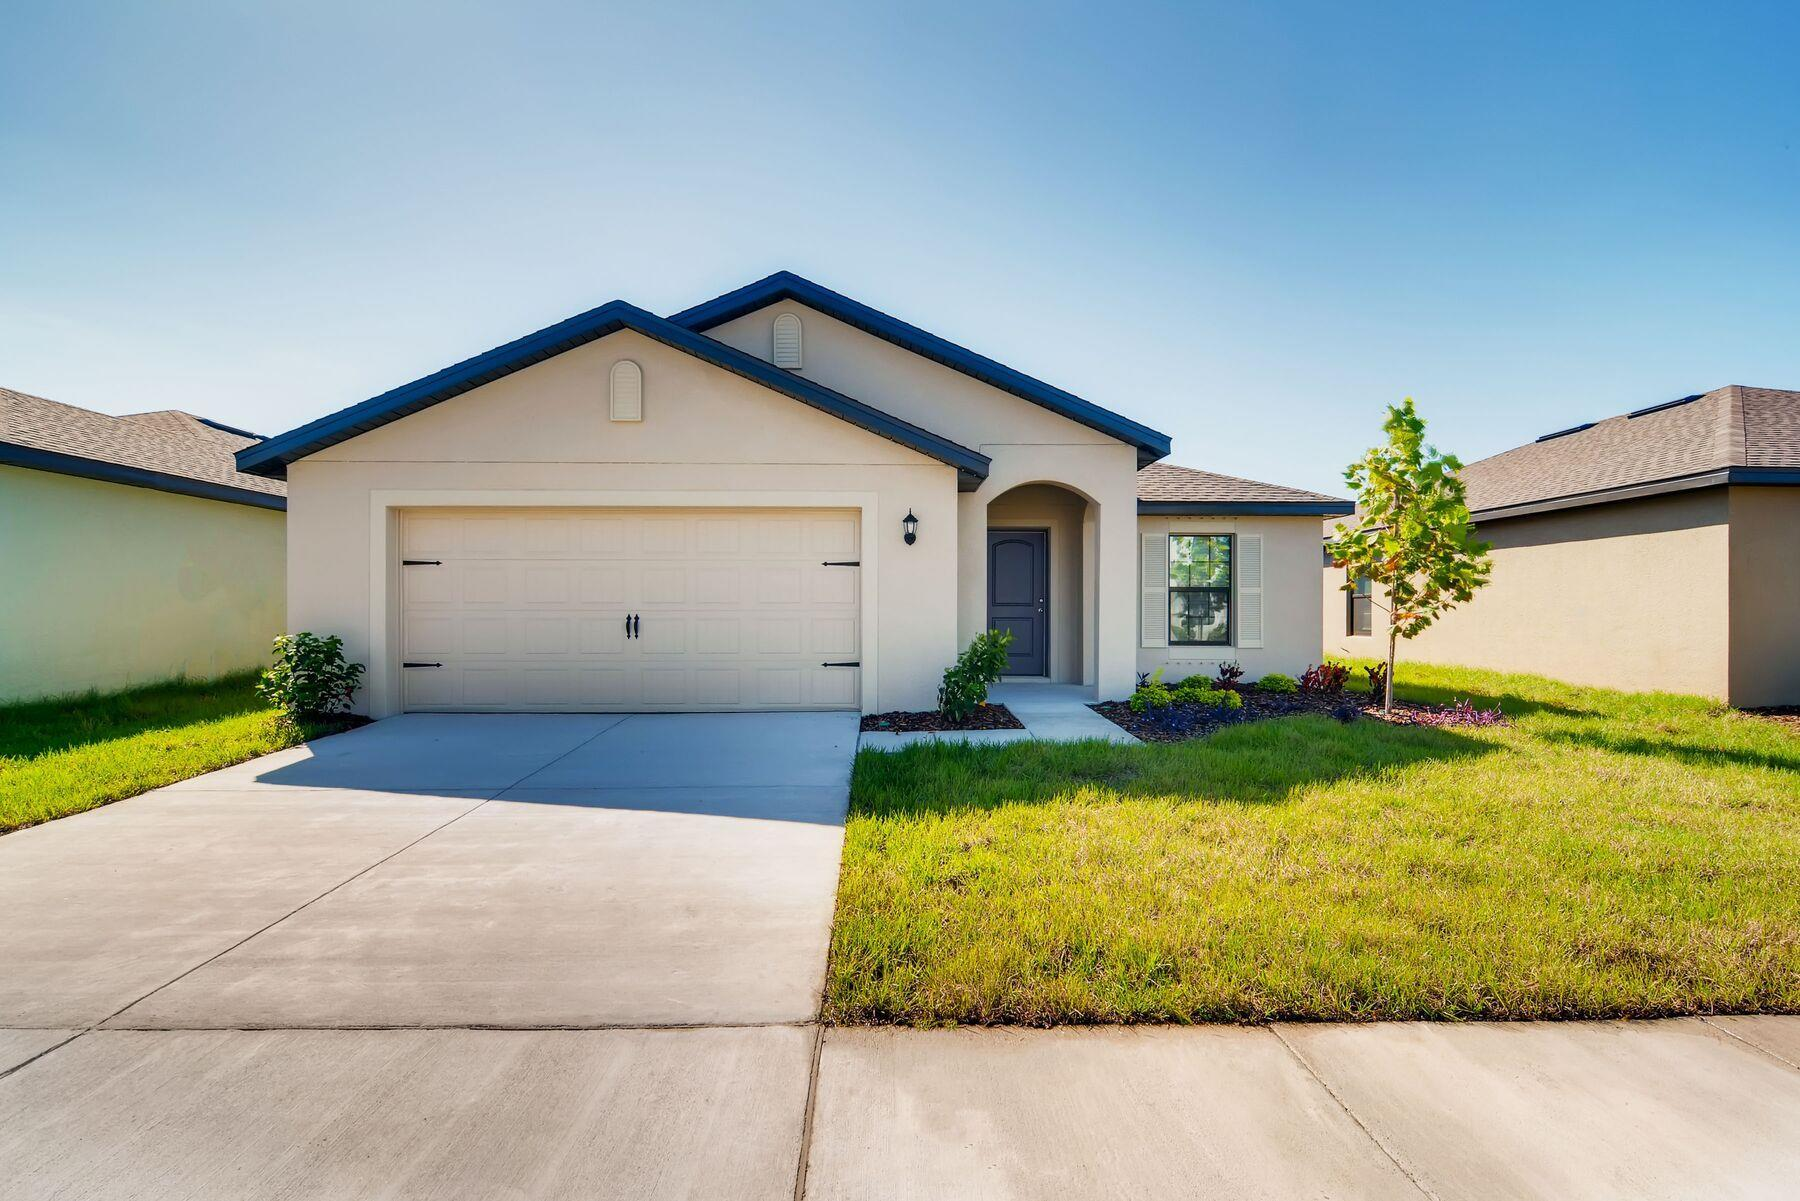 San Marino by LGI Homes:See why new homeowners are loving the move-in ready San Marino plan